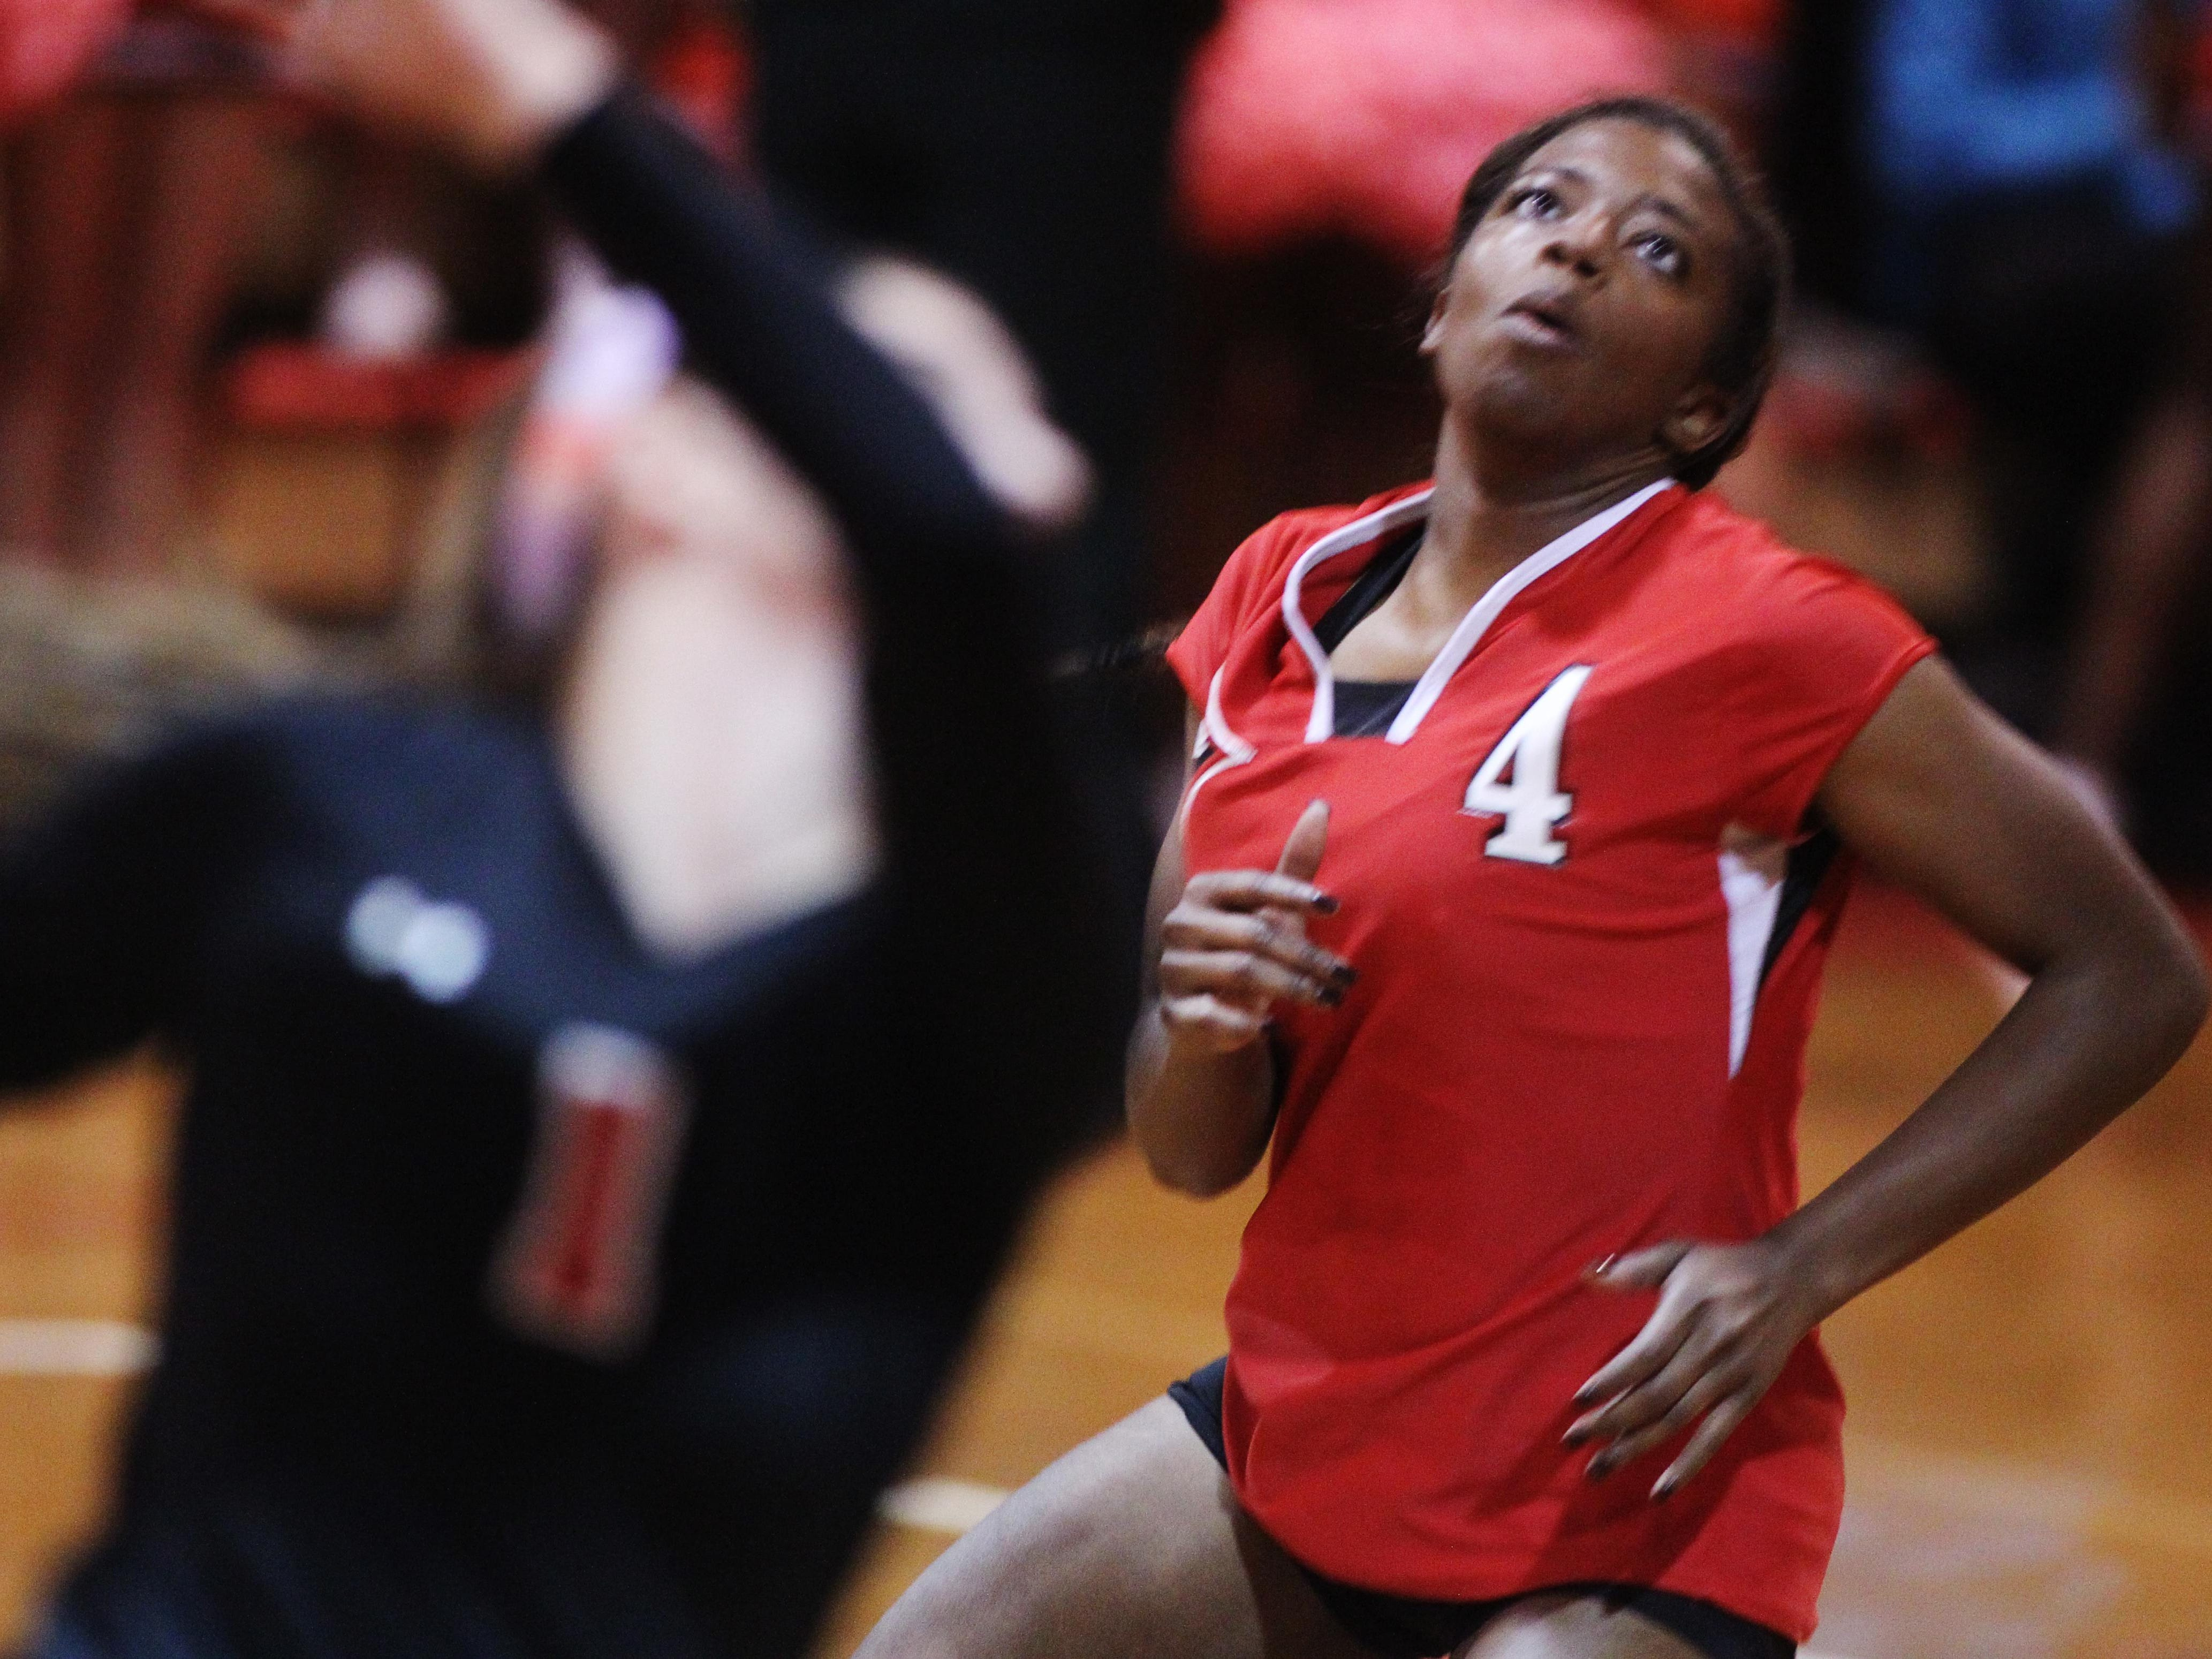 Leon senior Daijah Washington had 12 kills and three aces during Saturday's Class 7A state semifinal game against Tampa Plant, but the Lions fell 3-2 by just a few points in the tiebreaking fifth set.